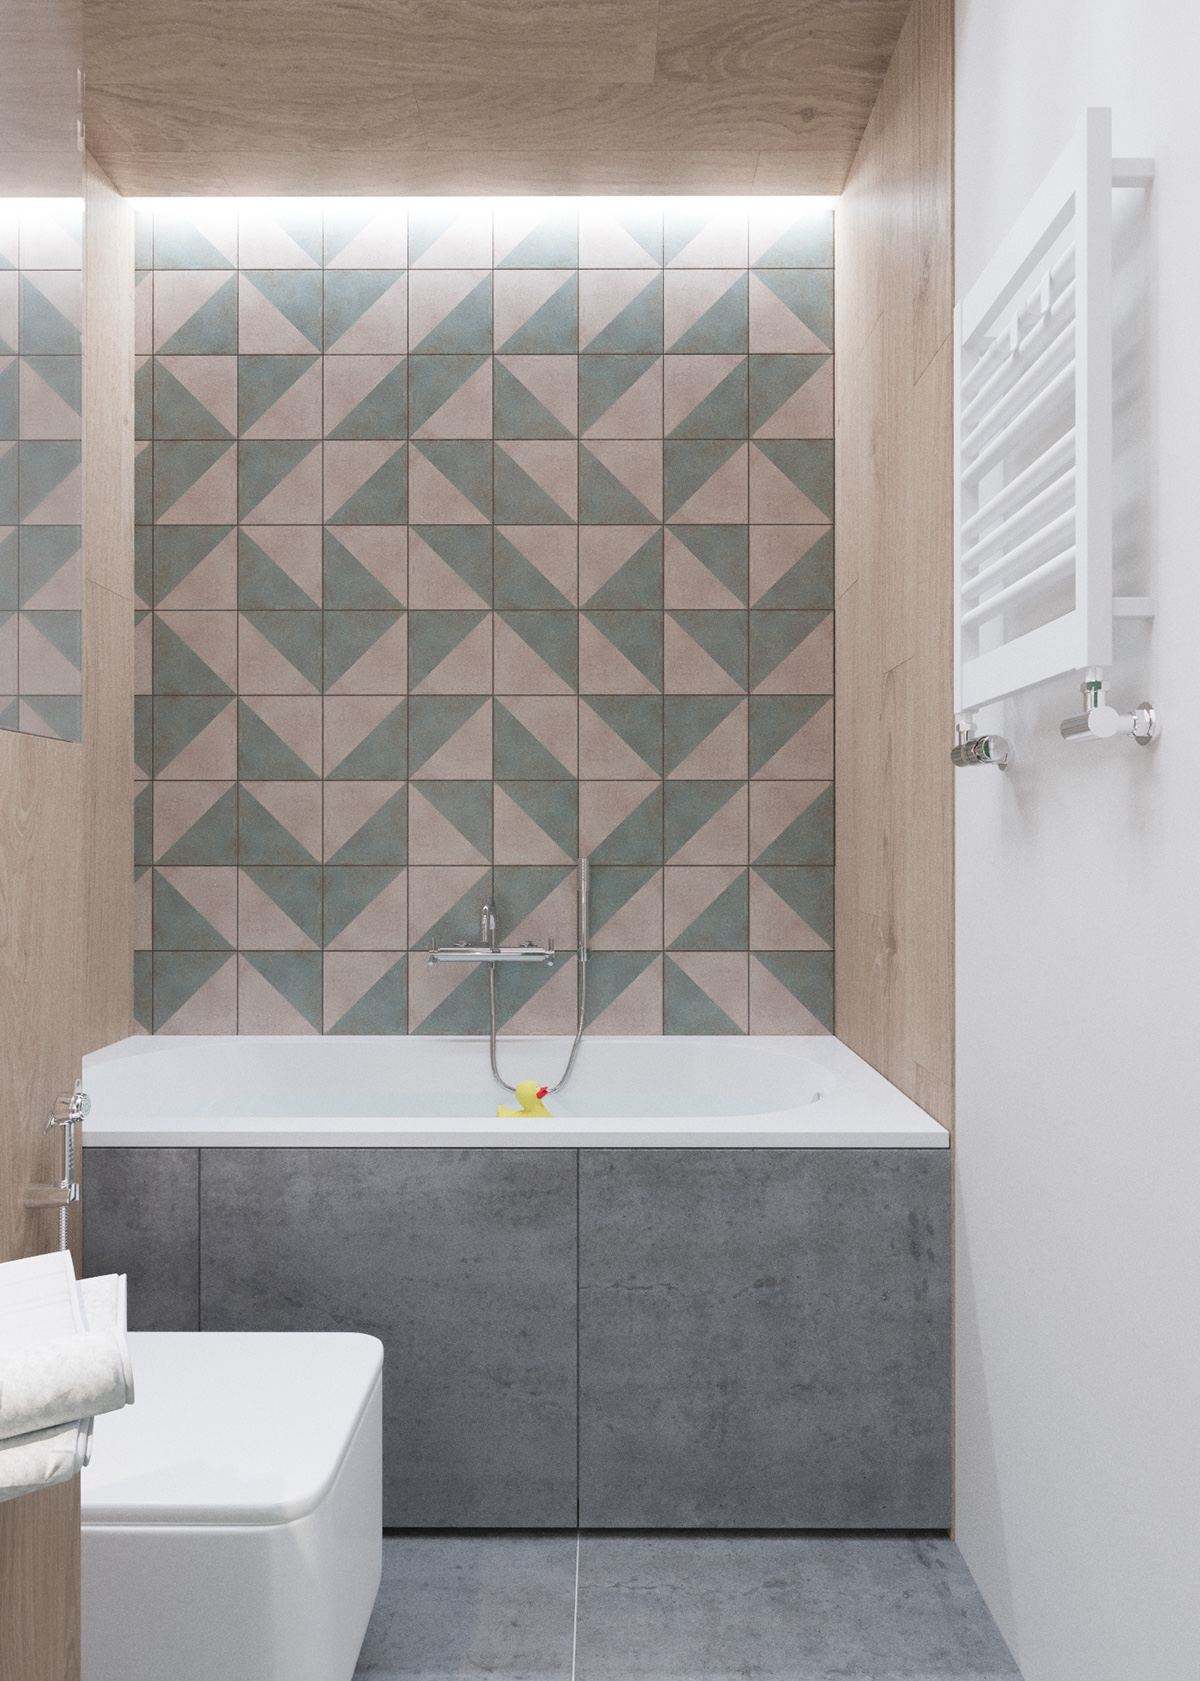 Claves_para_crear_contrastes_de_color_en_la_decoración_espacio_baño_cute-sage-green-and-wood-bathroom-tile-mosaic-min